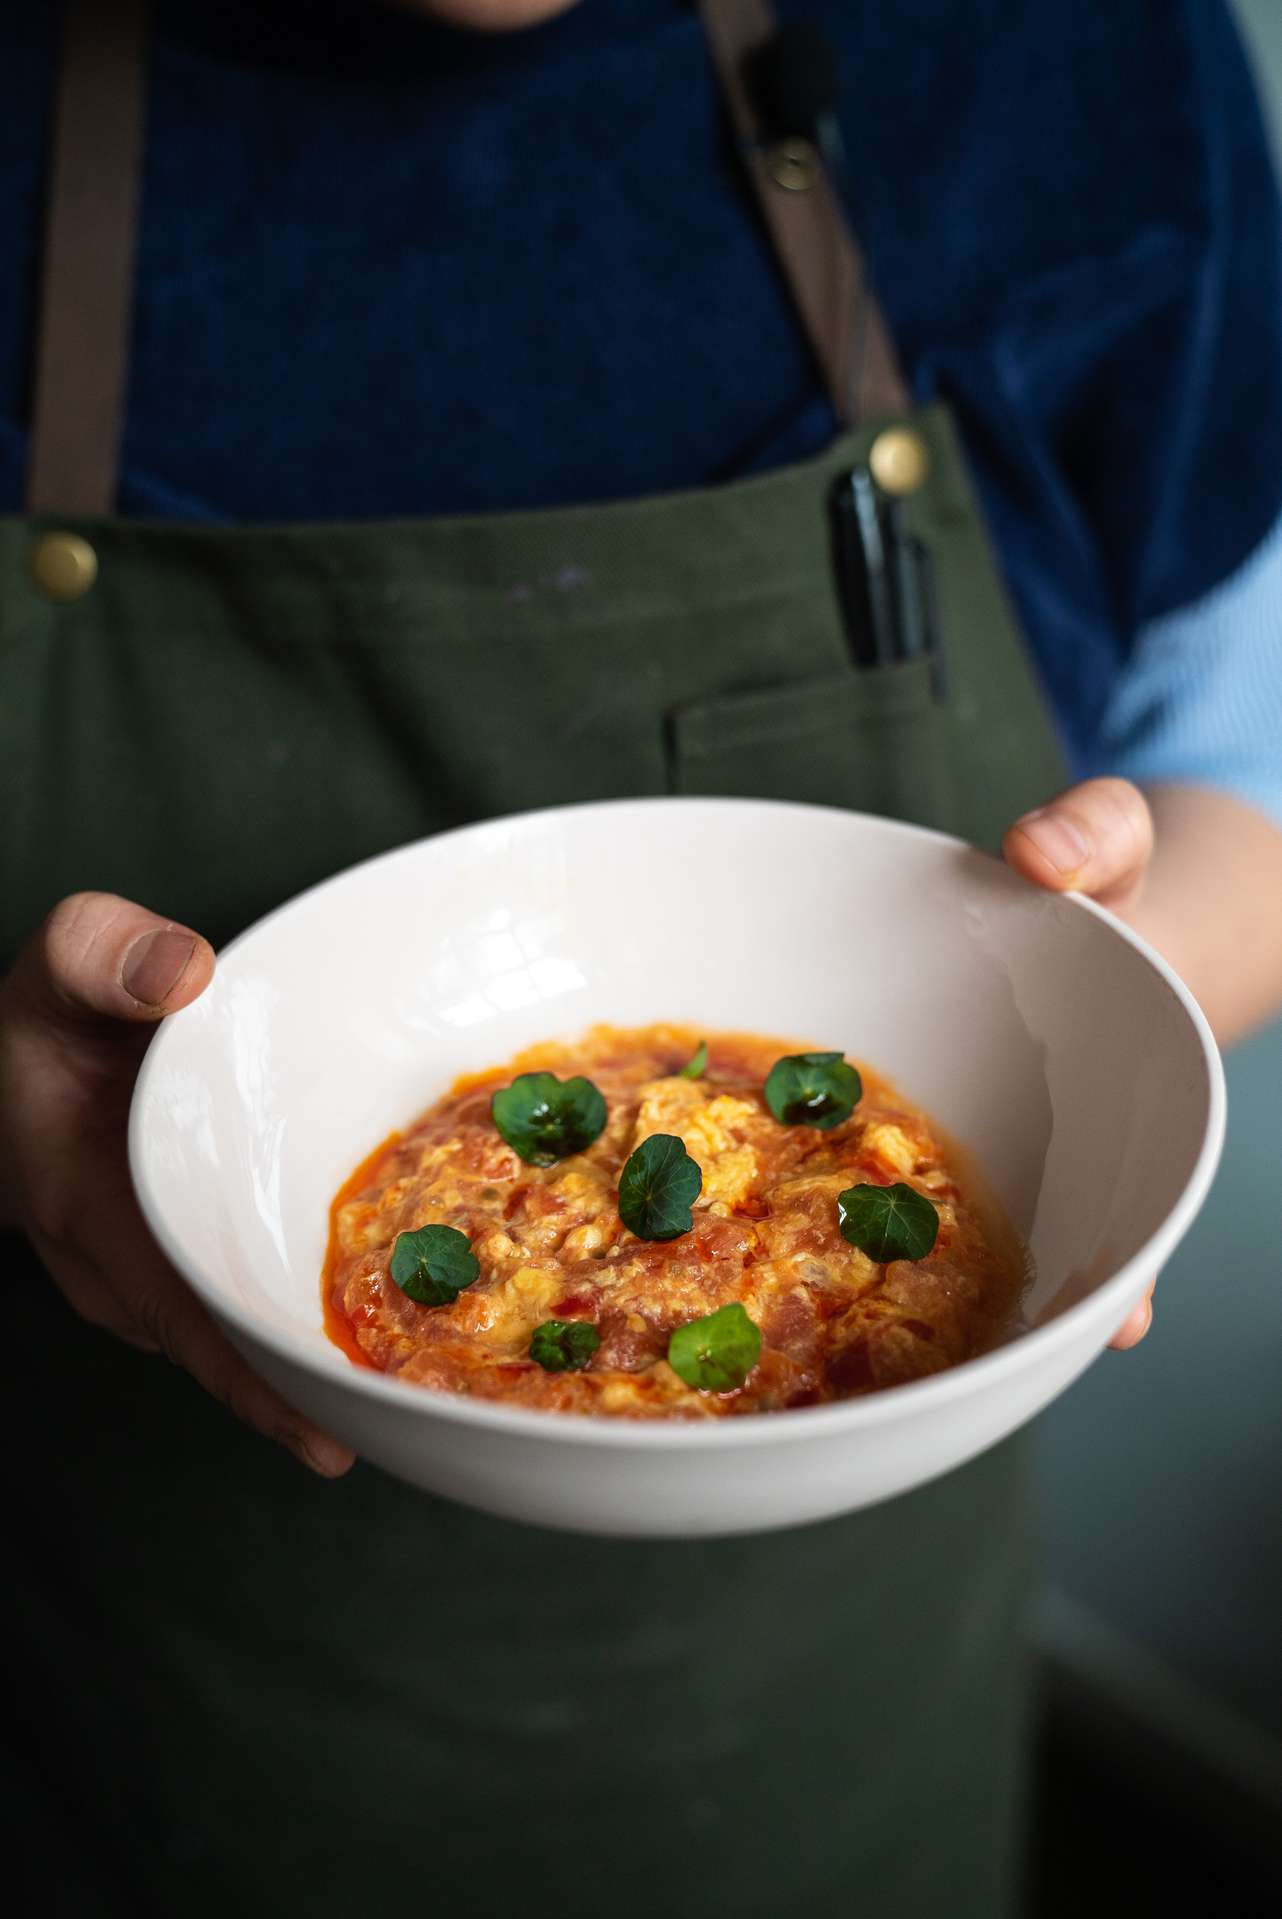 picture of chef Anita Feng childhood dish chef of Candide restaurant by Bruno Florin